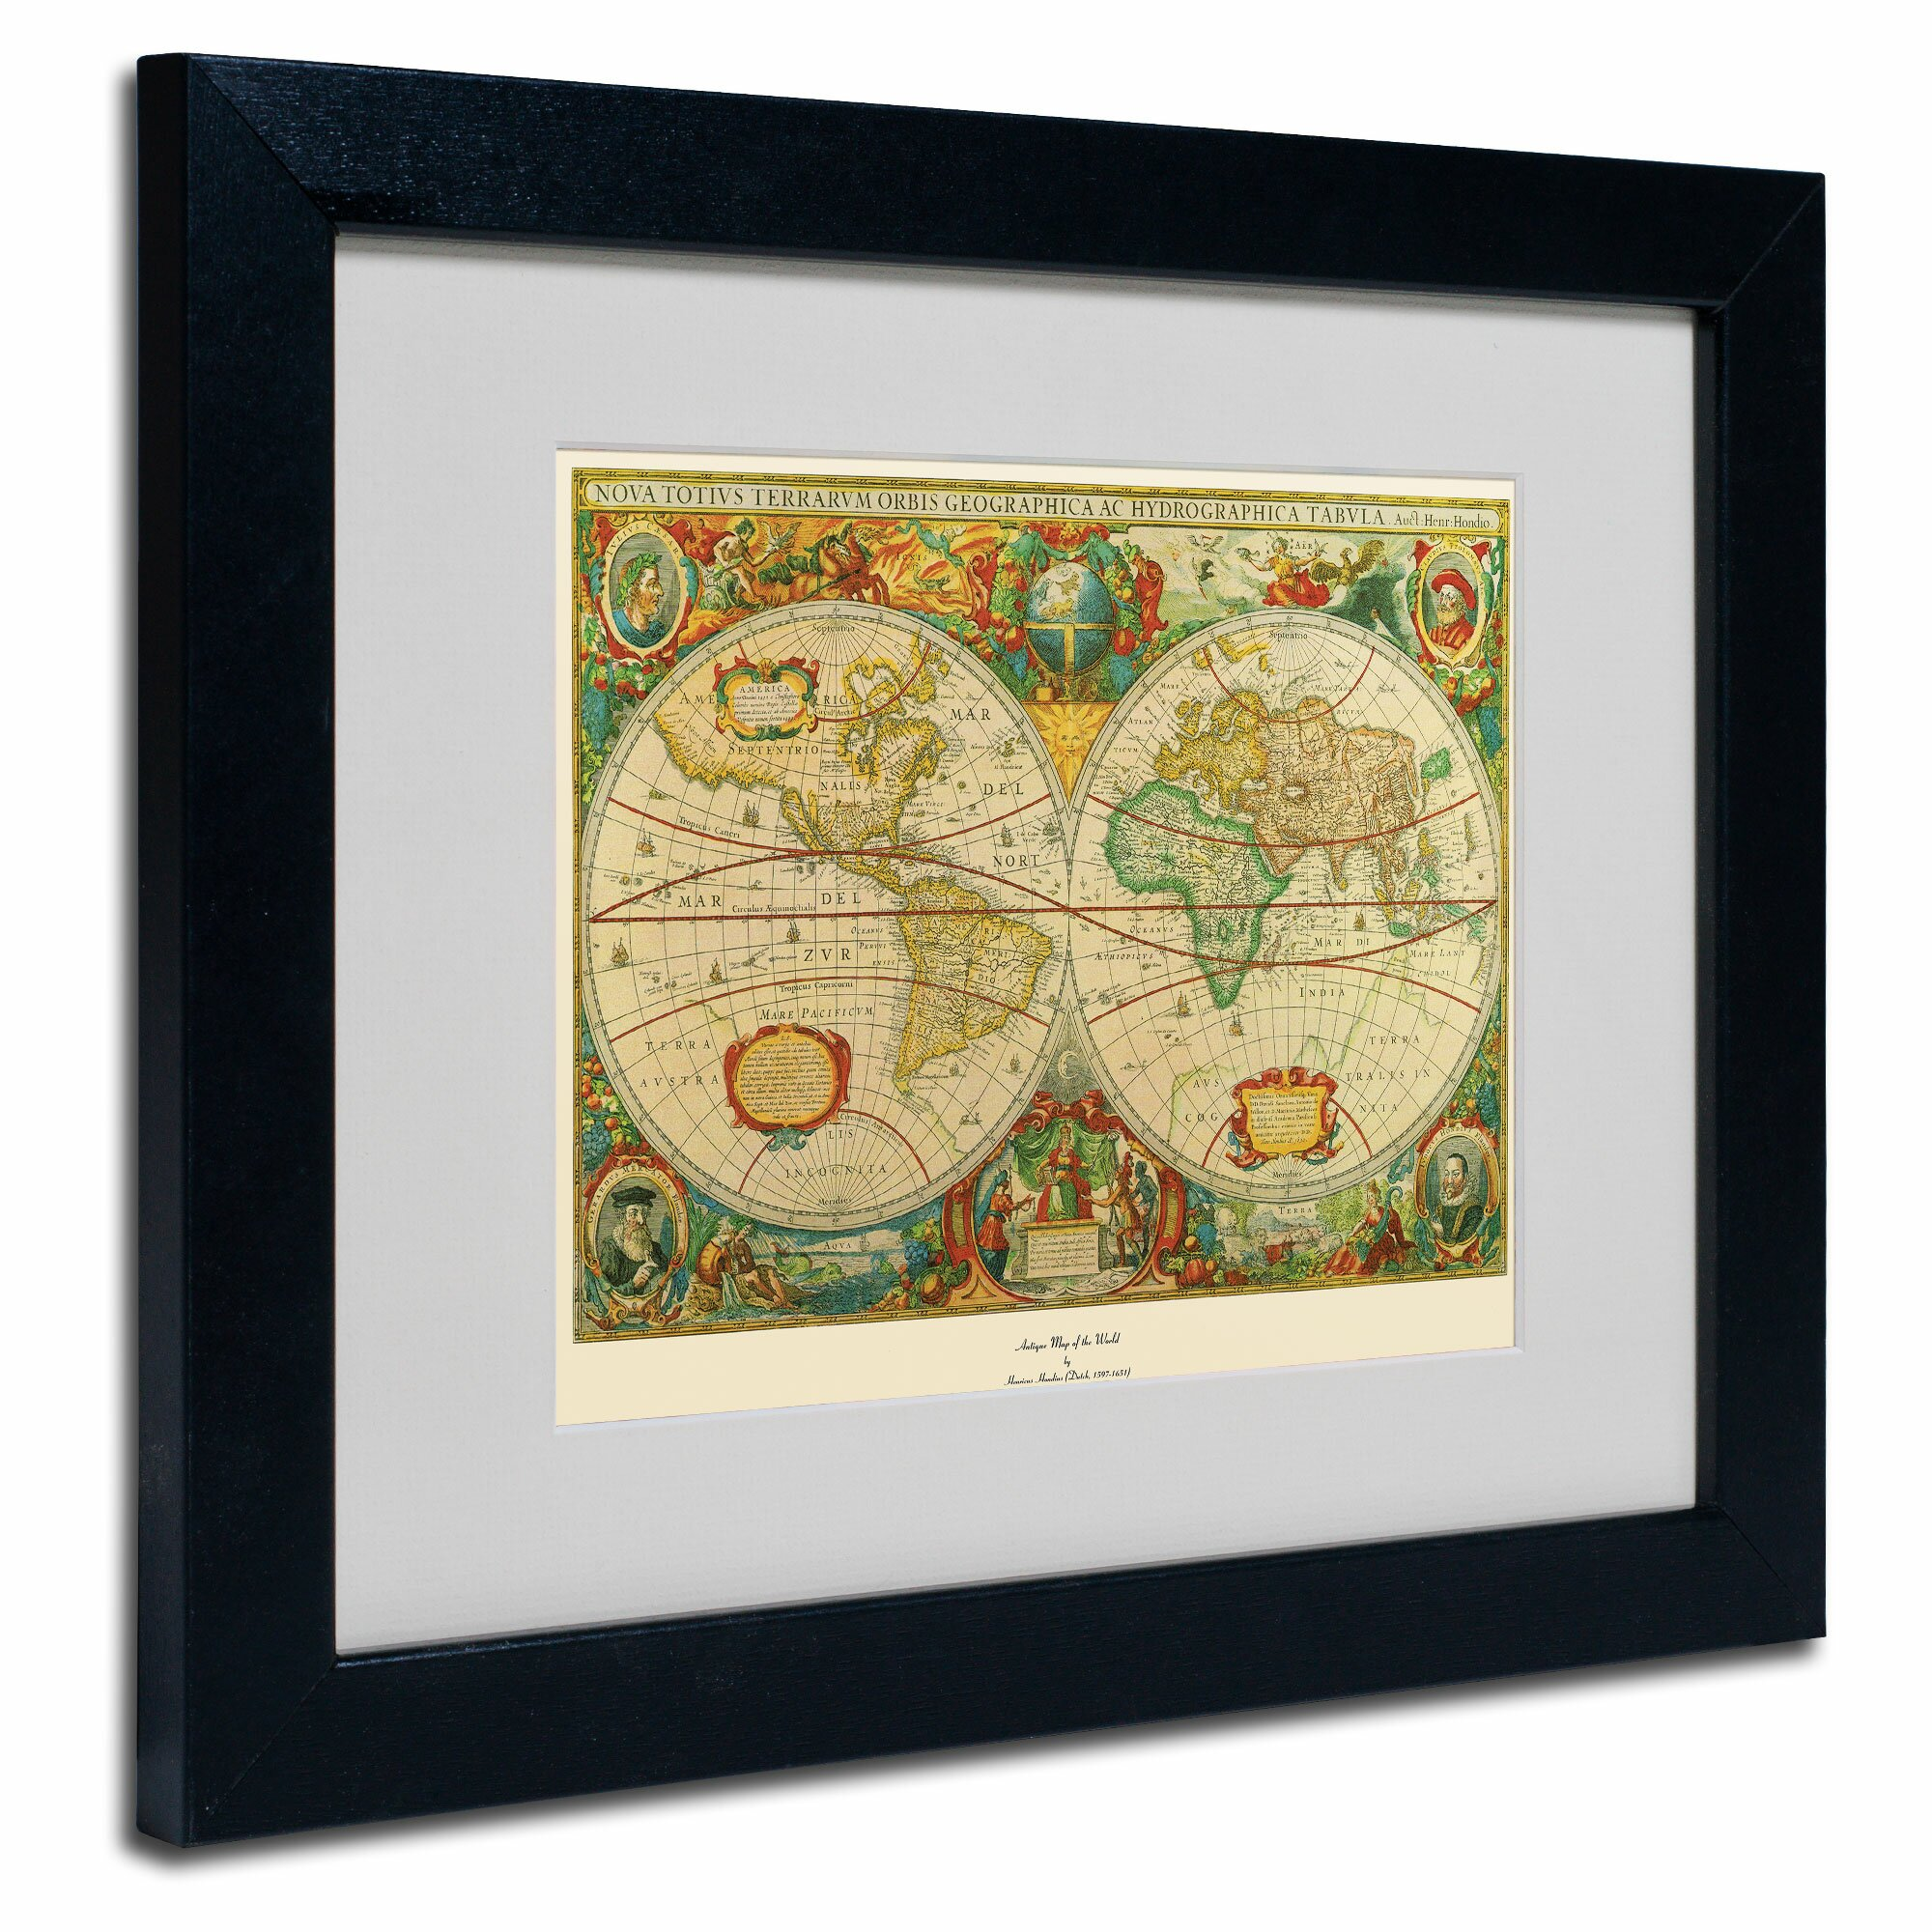 Trademark art 39old world map painting39 framed graphic art for Kitchen cabinets lowes with antique world map wall art